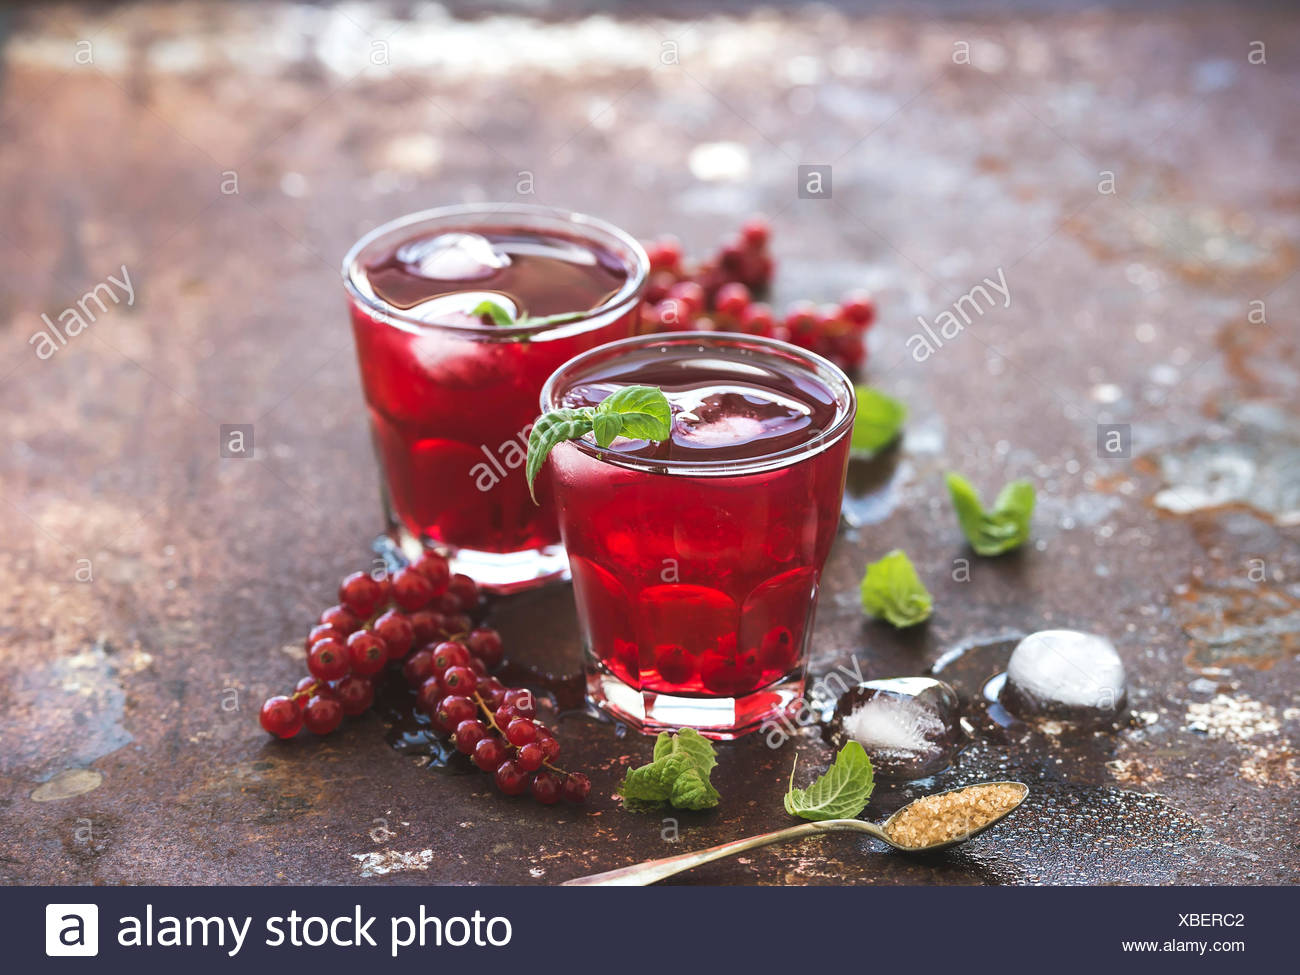 Red berry lemonade with ice and mint on grunge vintage rusty metal backdround, selective focus - Stock Image